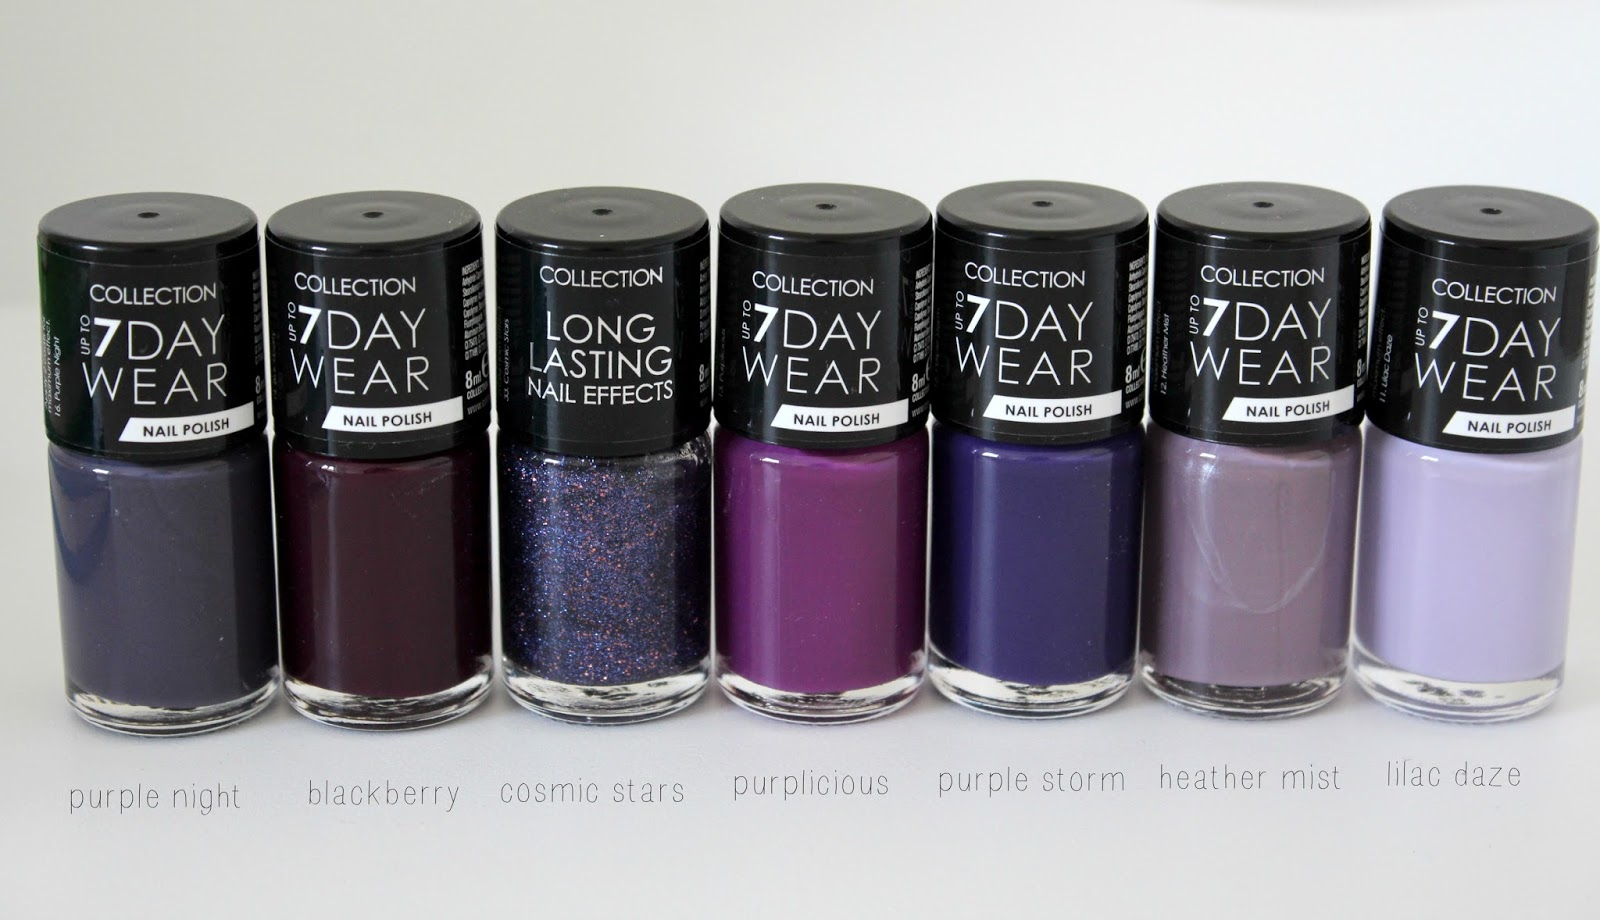 Collection 7 Day Wear & Long Lasting Nail Polishes ♡ | Brogan Tate